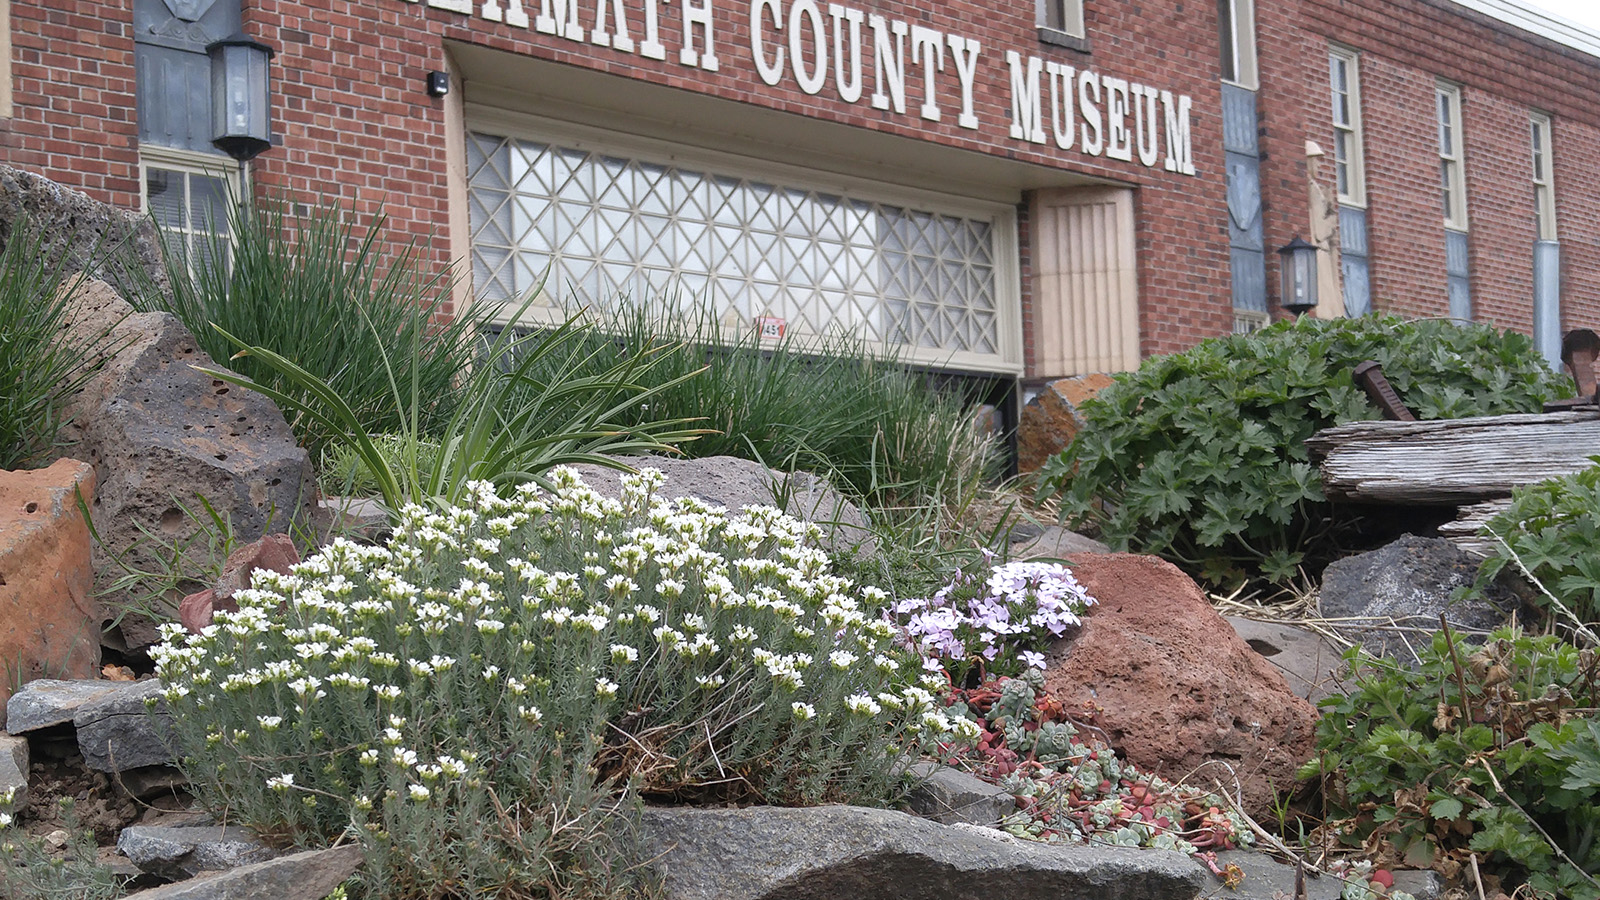 A native plant walk is scheduled for 1 p.m. Sunday, April 22, at the Klamath County Museum in recognition of Native Plant Appreciation Week. Wildflowers shown in this photo include desert combleaf and spreading phlox. (Submitted Photo)